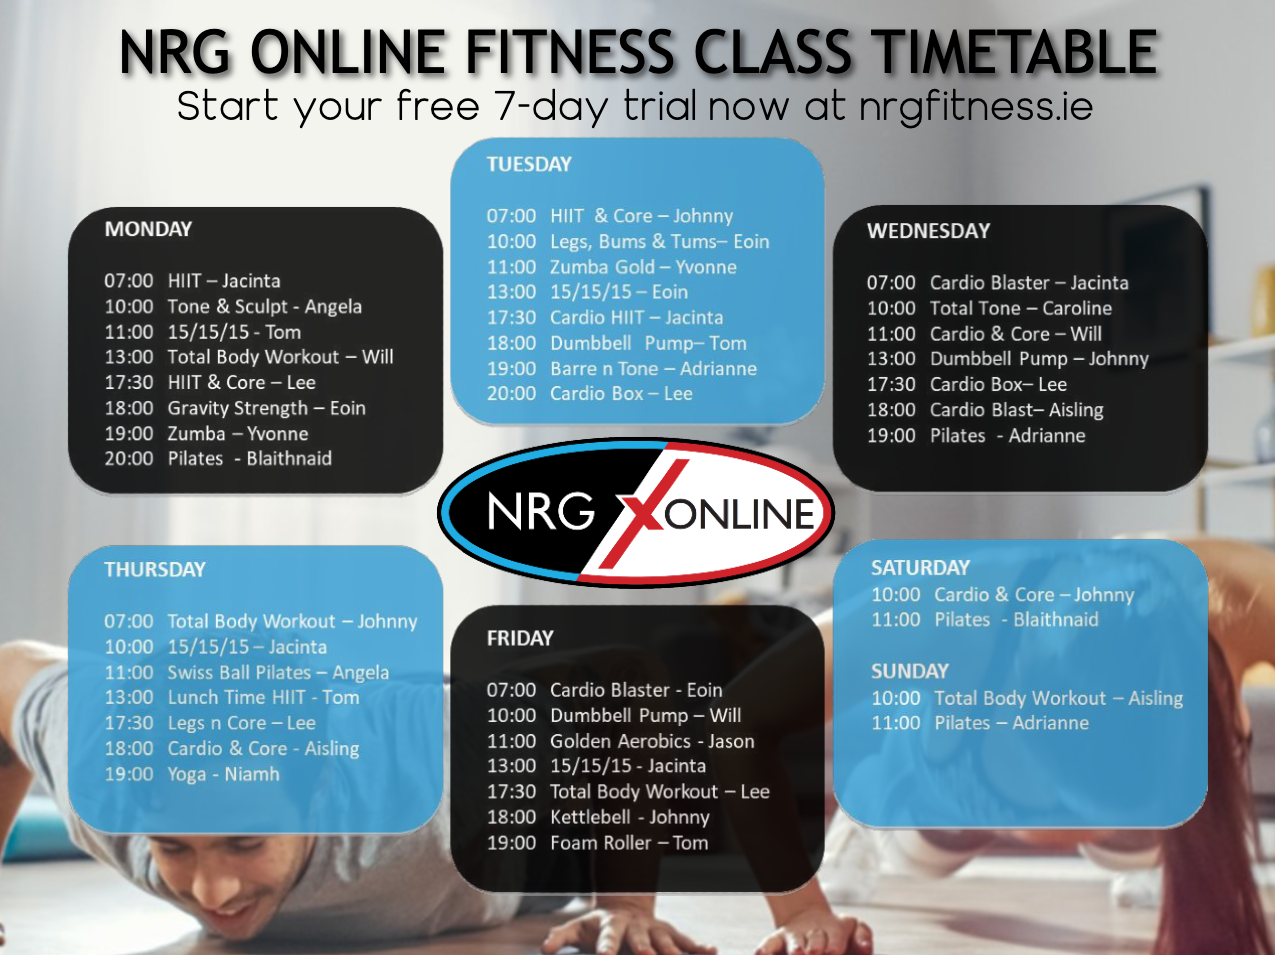 VIEW TIMETABLE